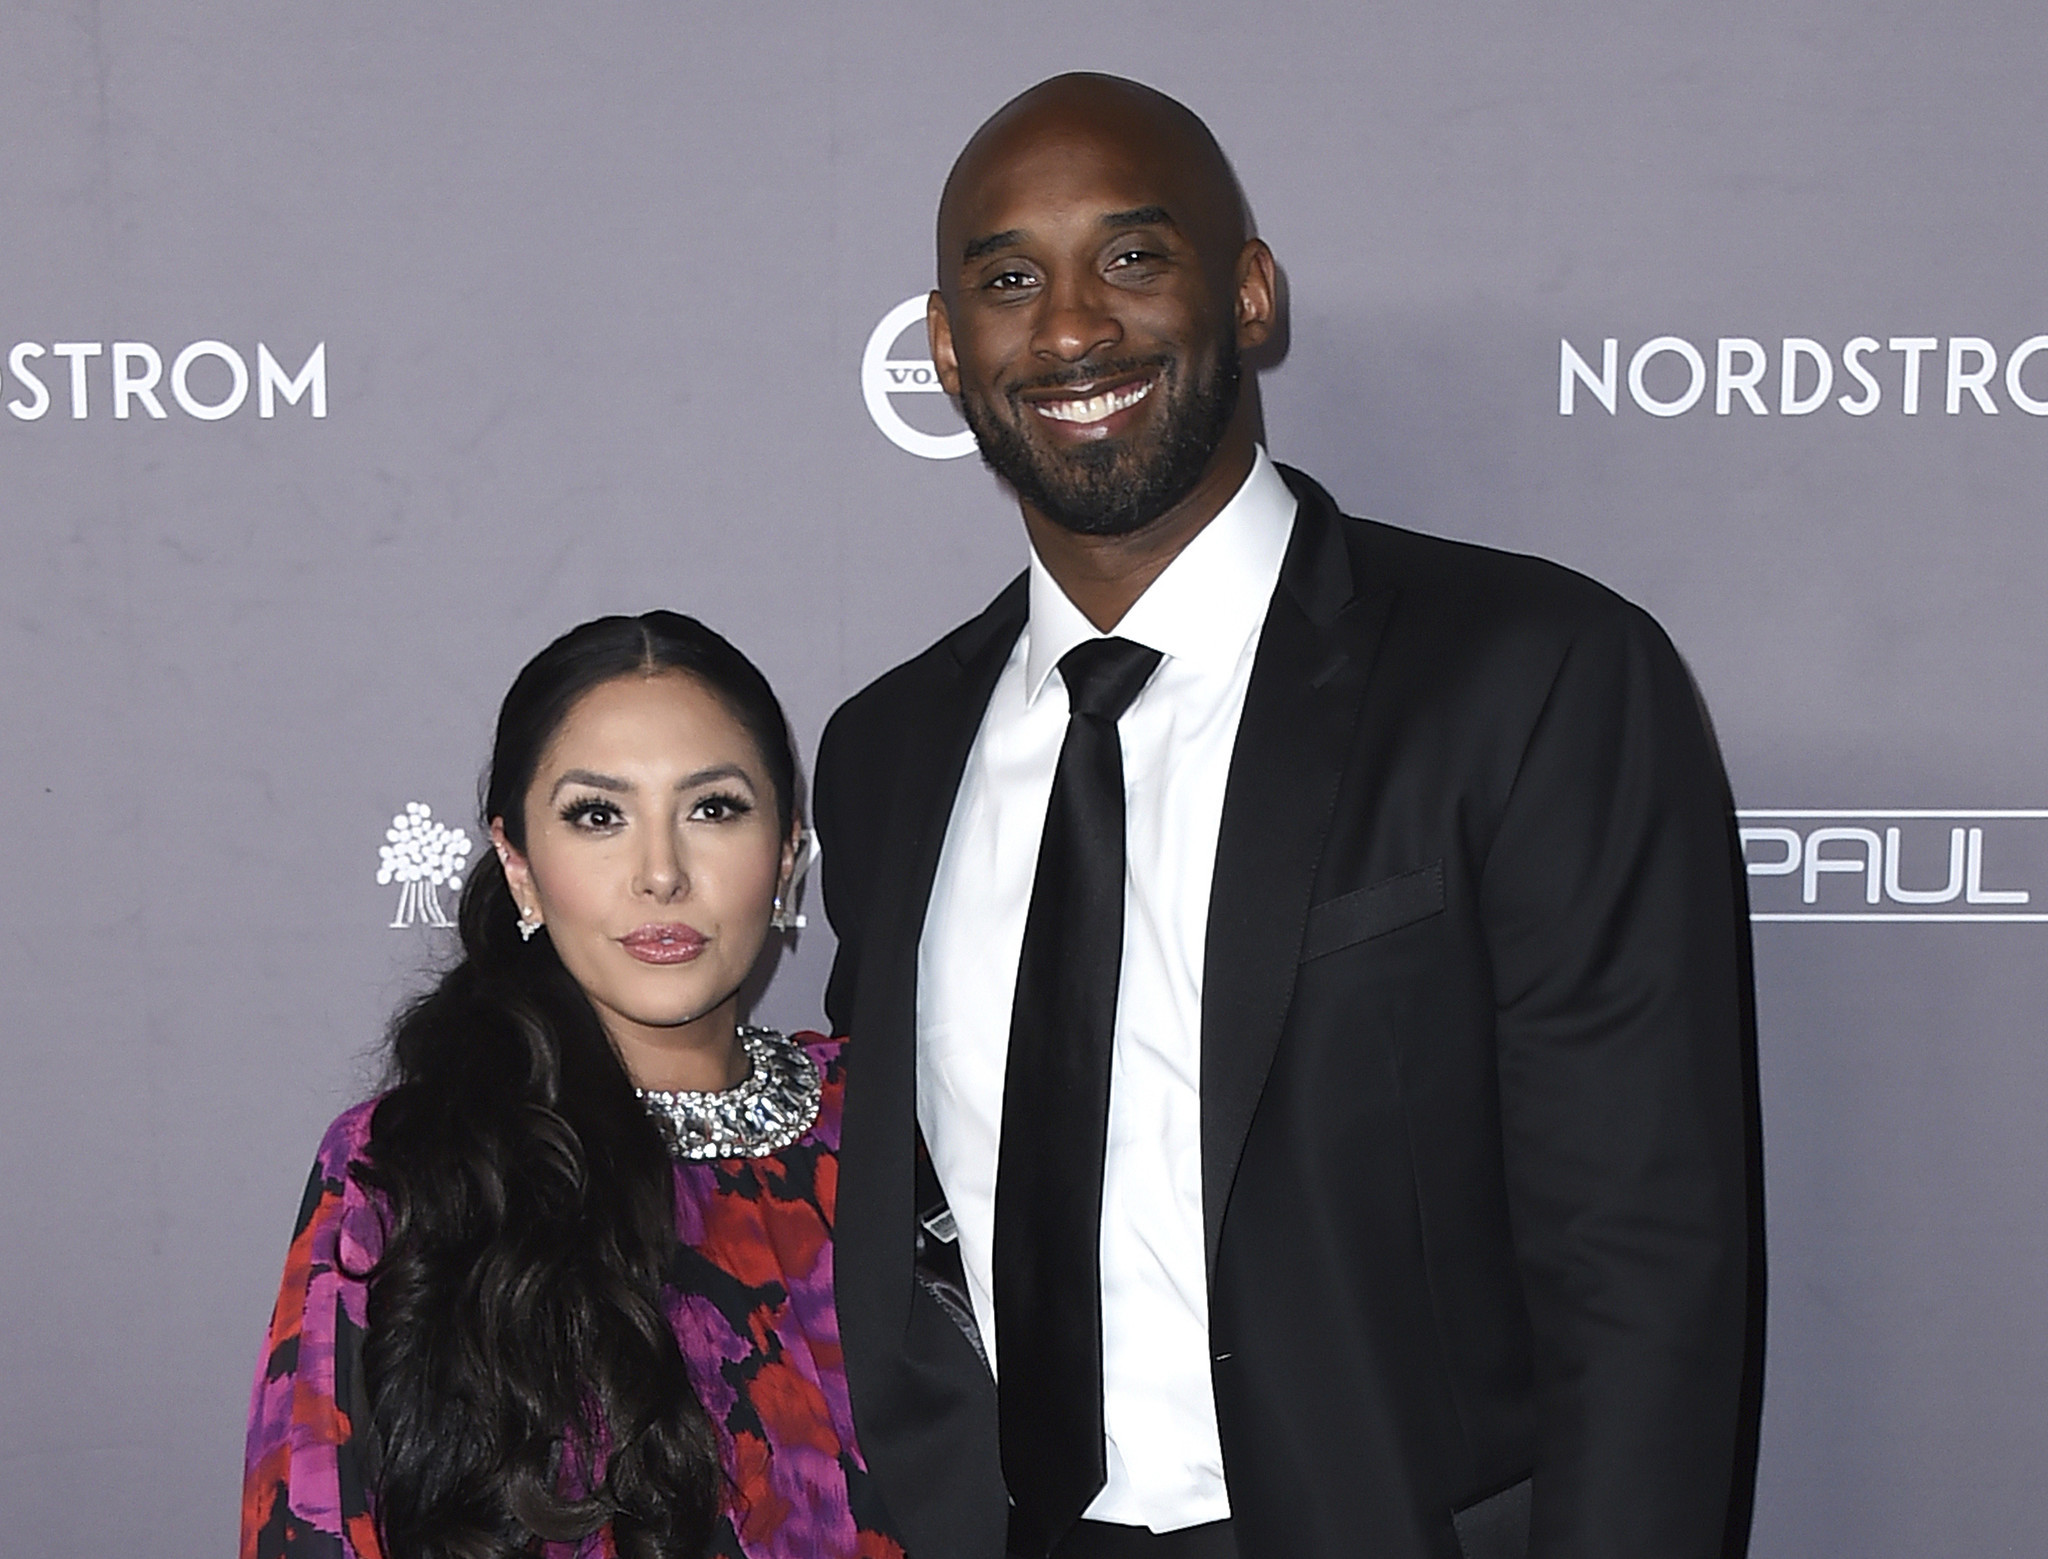 'Devastated' Vanessa Bryant working very hard 'to pull it together for the other girls' since tragic death of Kobe and daughter Gianna